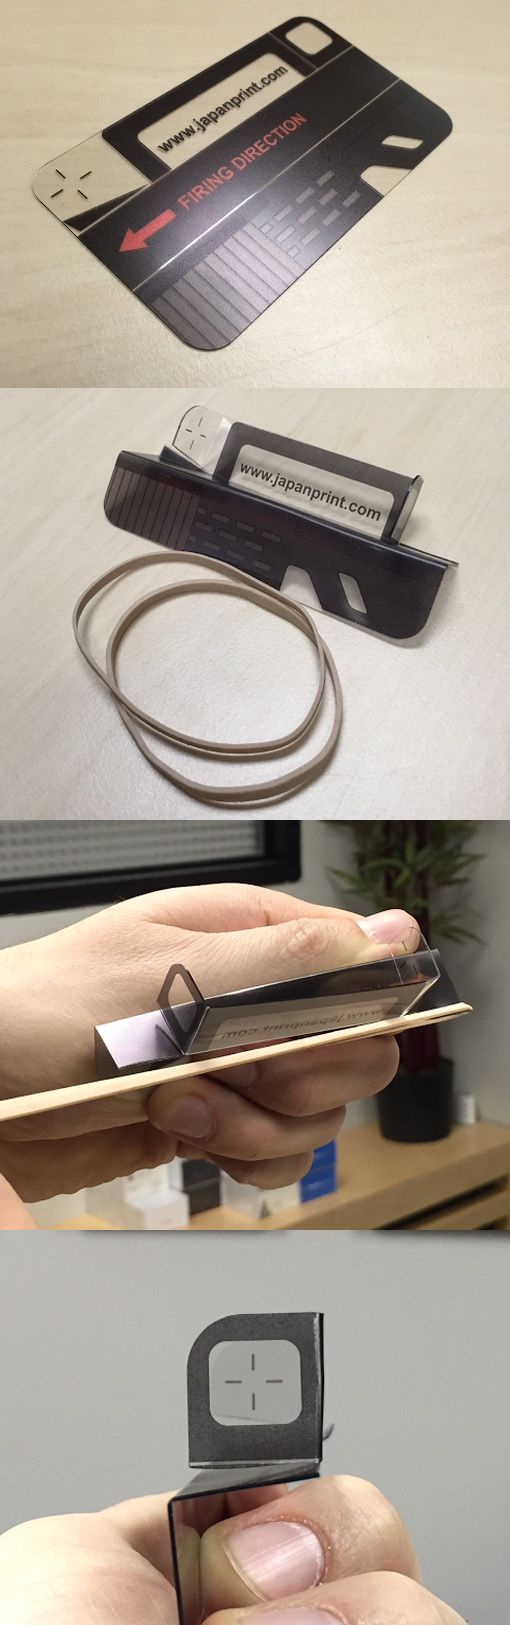 Clever 3D Plastic Folding Business Card Becomes A Rubber Band ...